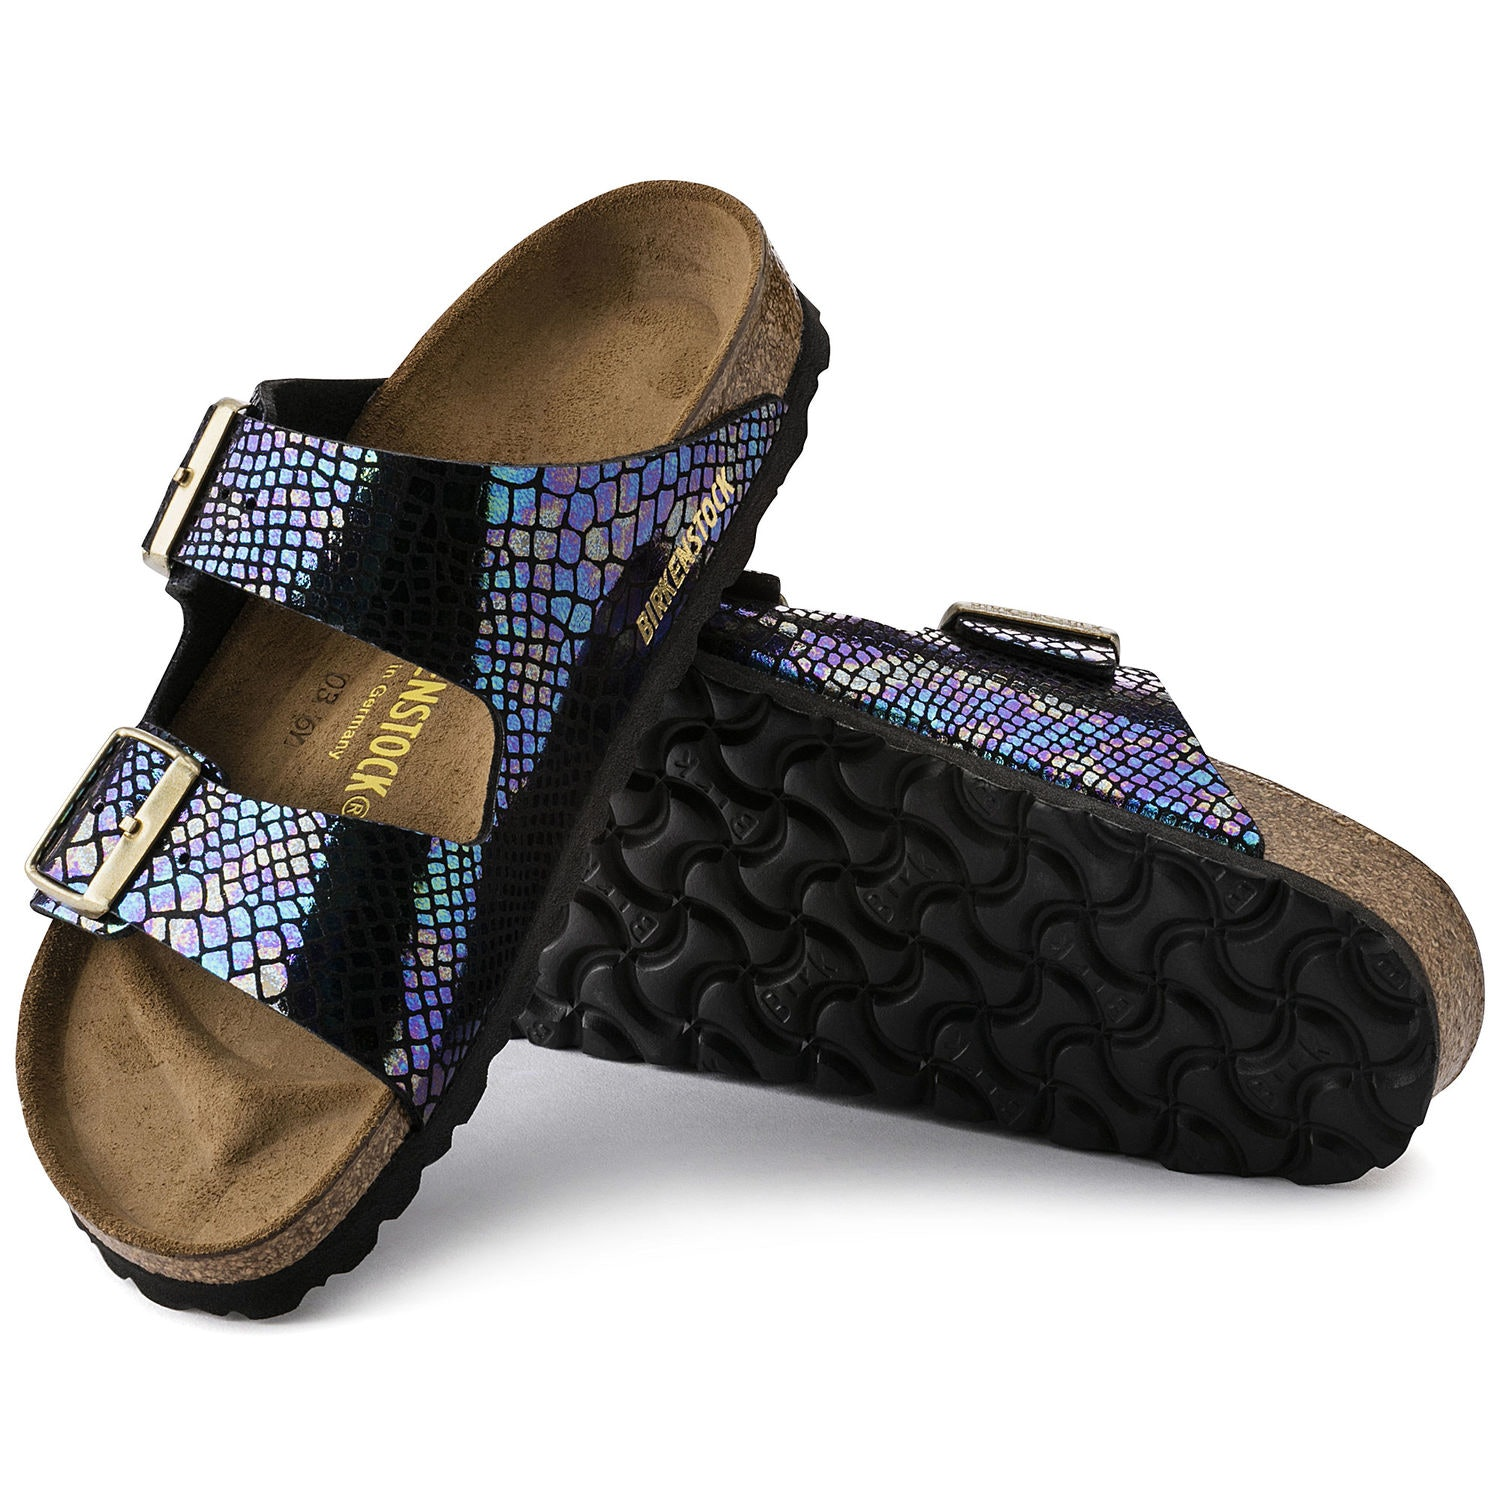 c4e11876a77 Where Can You Buy Glitter Birkenstocks  These Classic  90s Shoes Just Got A  Glitzy Upgrade